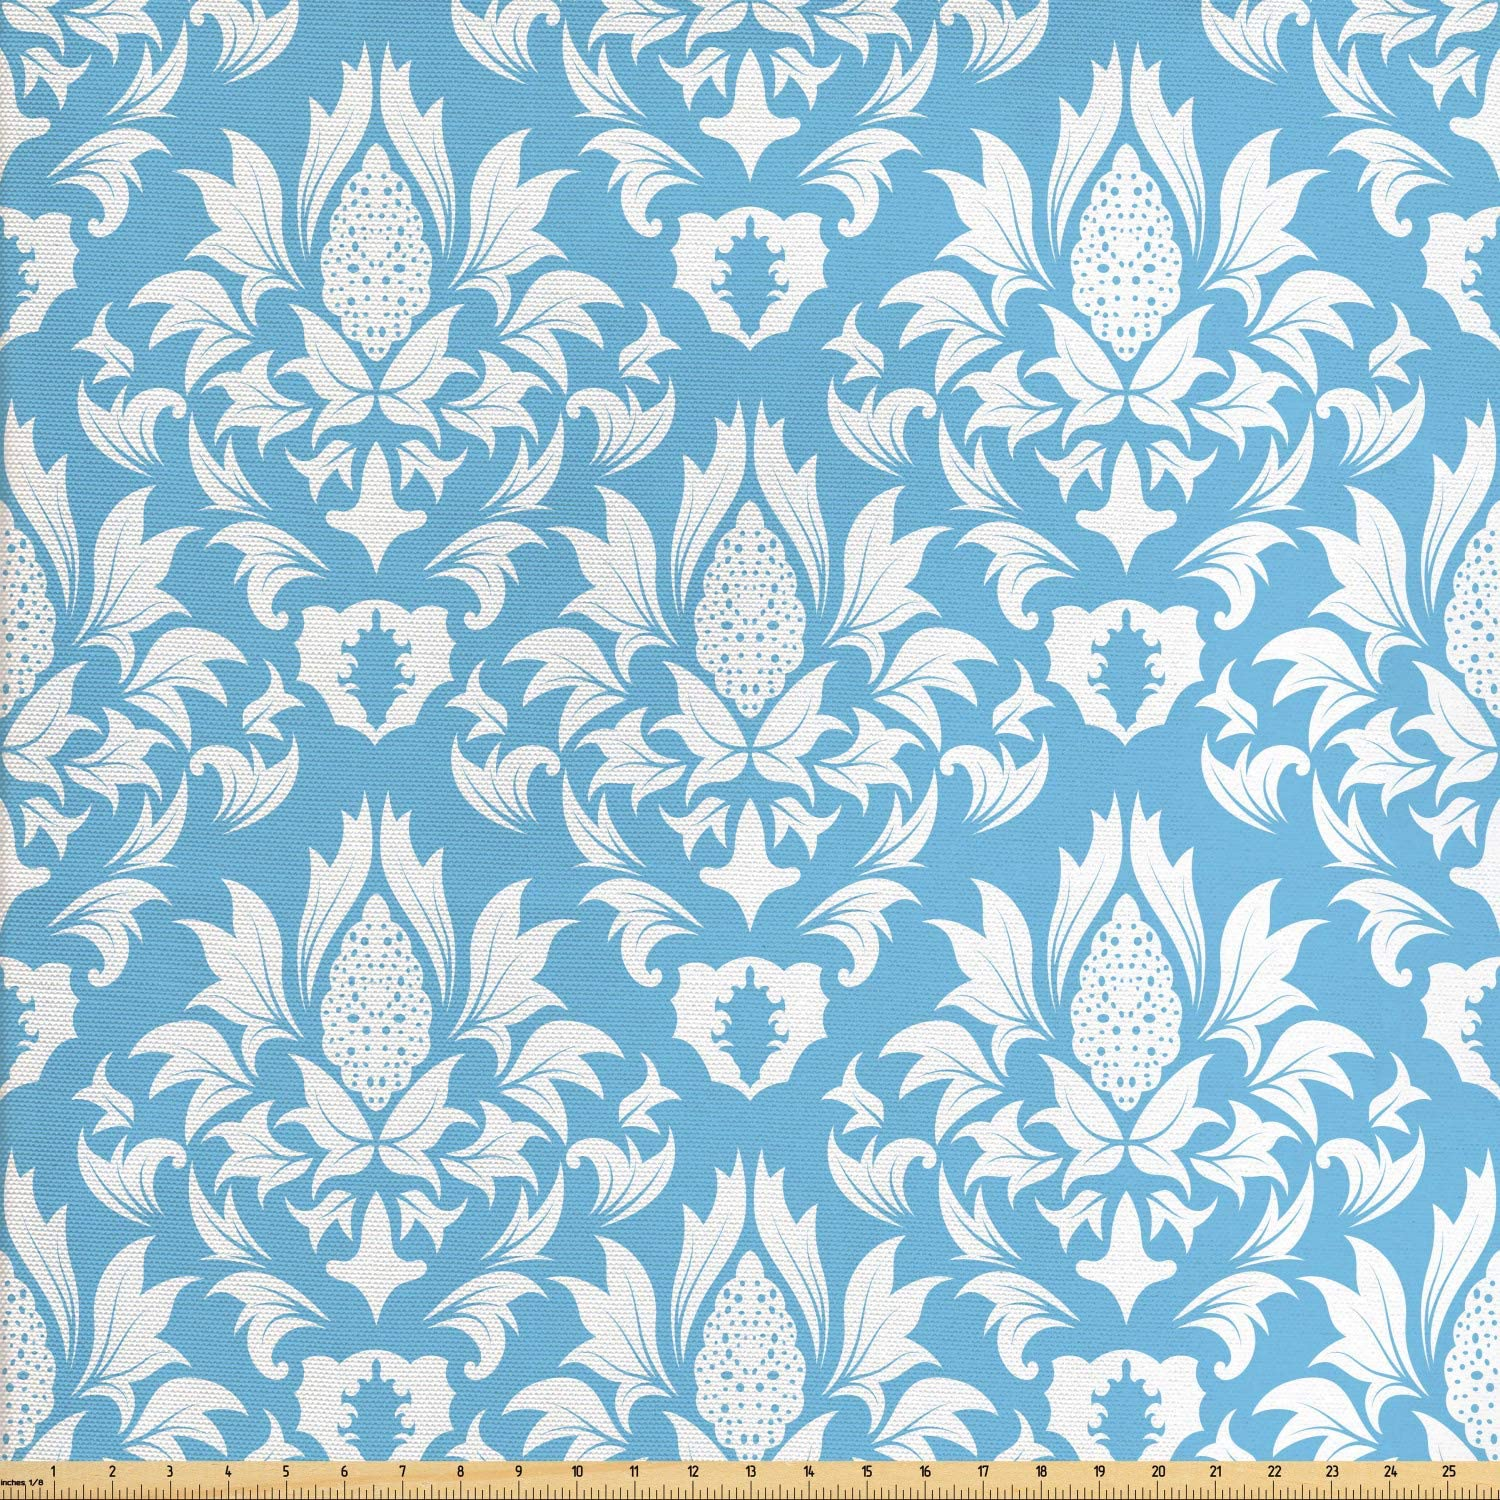 Ambesonne Damask Fabric by The Yard, Natural Pattern in Blue and White Organic Garden Foliage Old Revival Leaves, Decorative Fabric for Upholstery and Home Accents, 1 Yard, Sky Blue